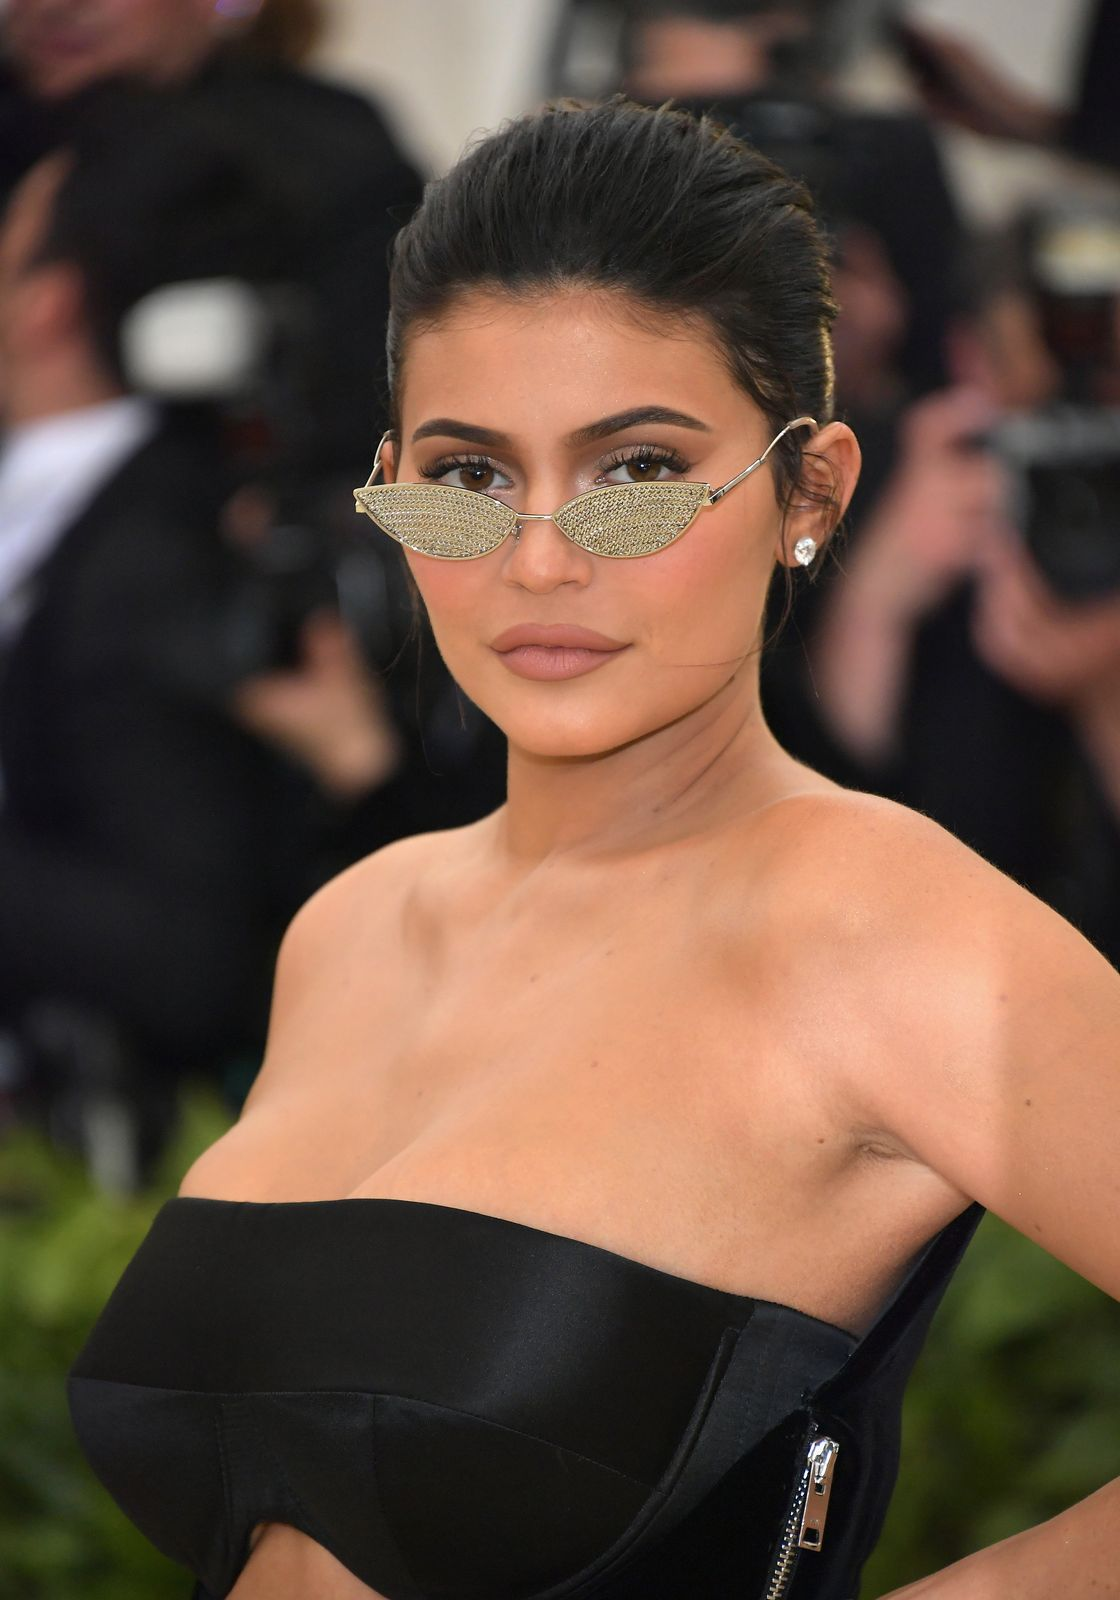 Kylie Jenner at the MET Gala in 2018 in New York City | Source: Getty Images